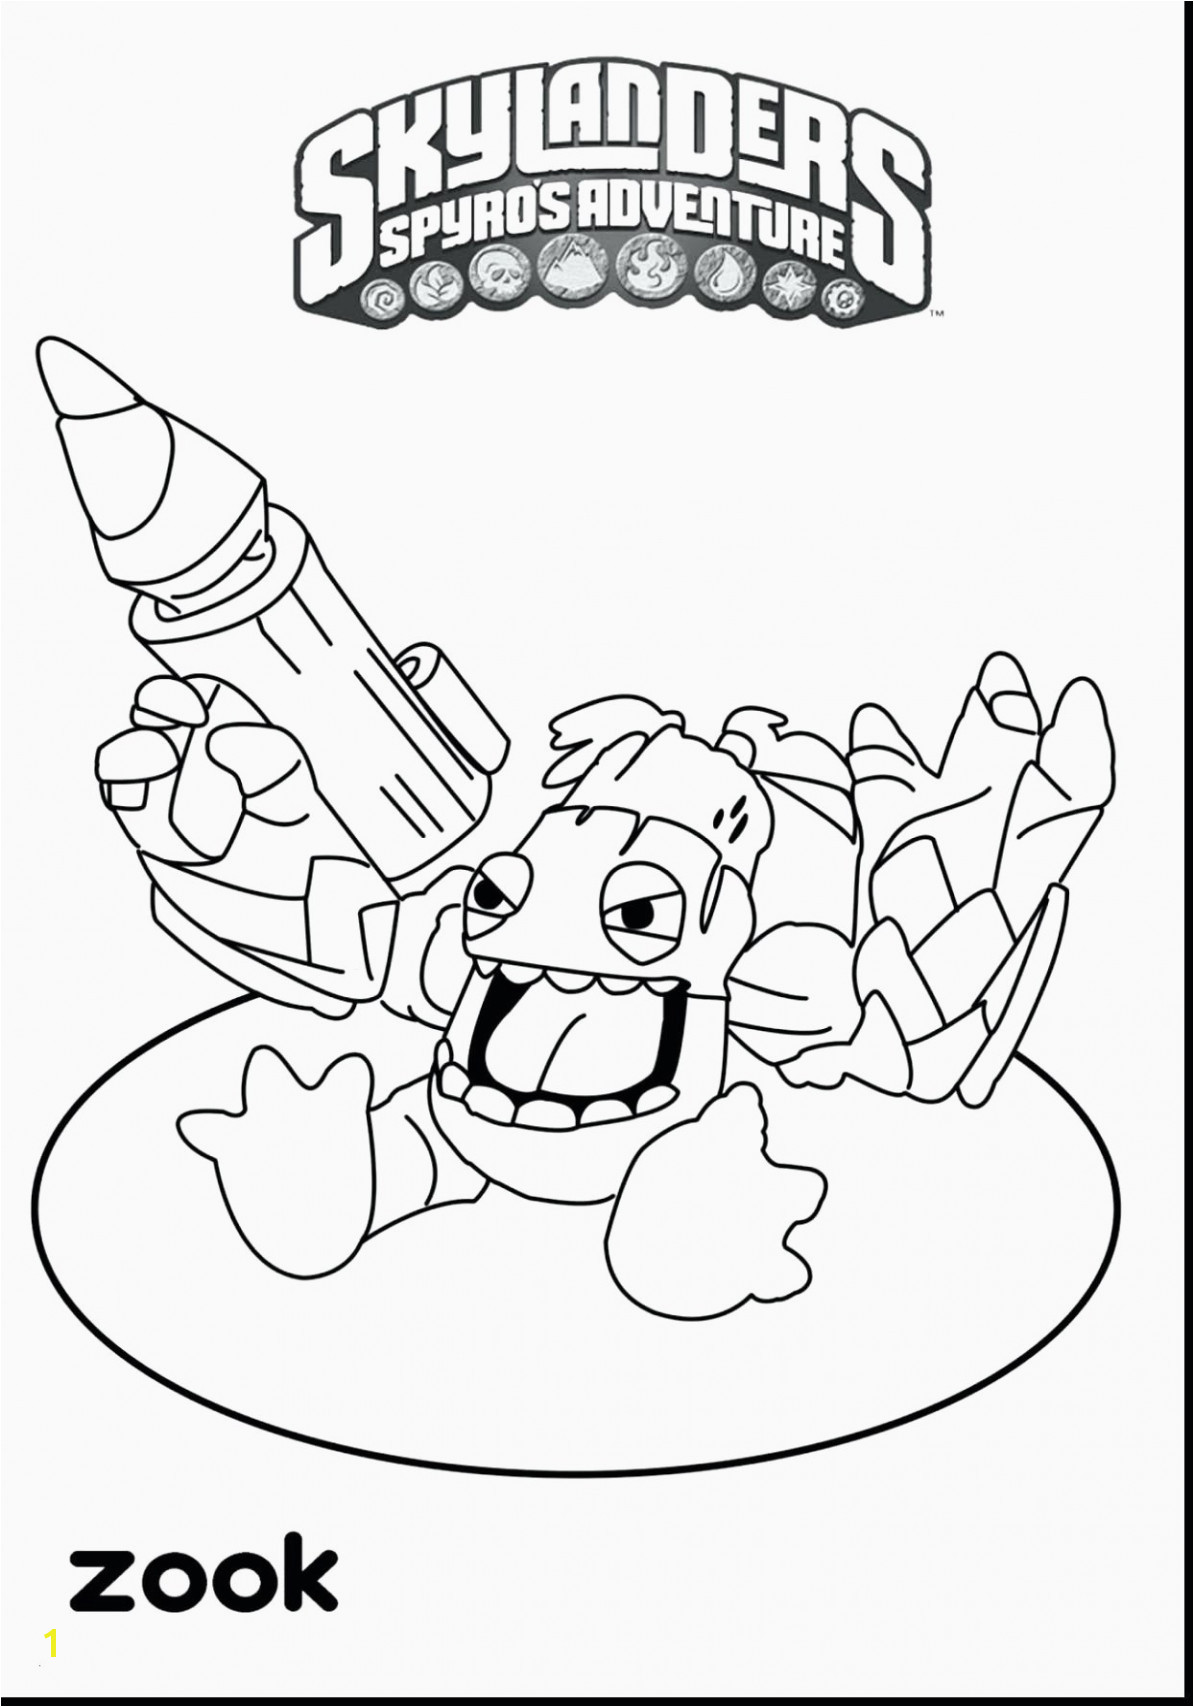 Wwe Rey Mysterio Mask Coloring Pages Wwe Coloring Pages Wwe Rey Mysterio Mask Coloring Pages Coloring